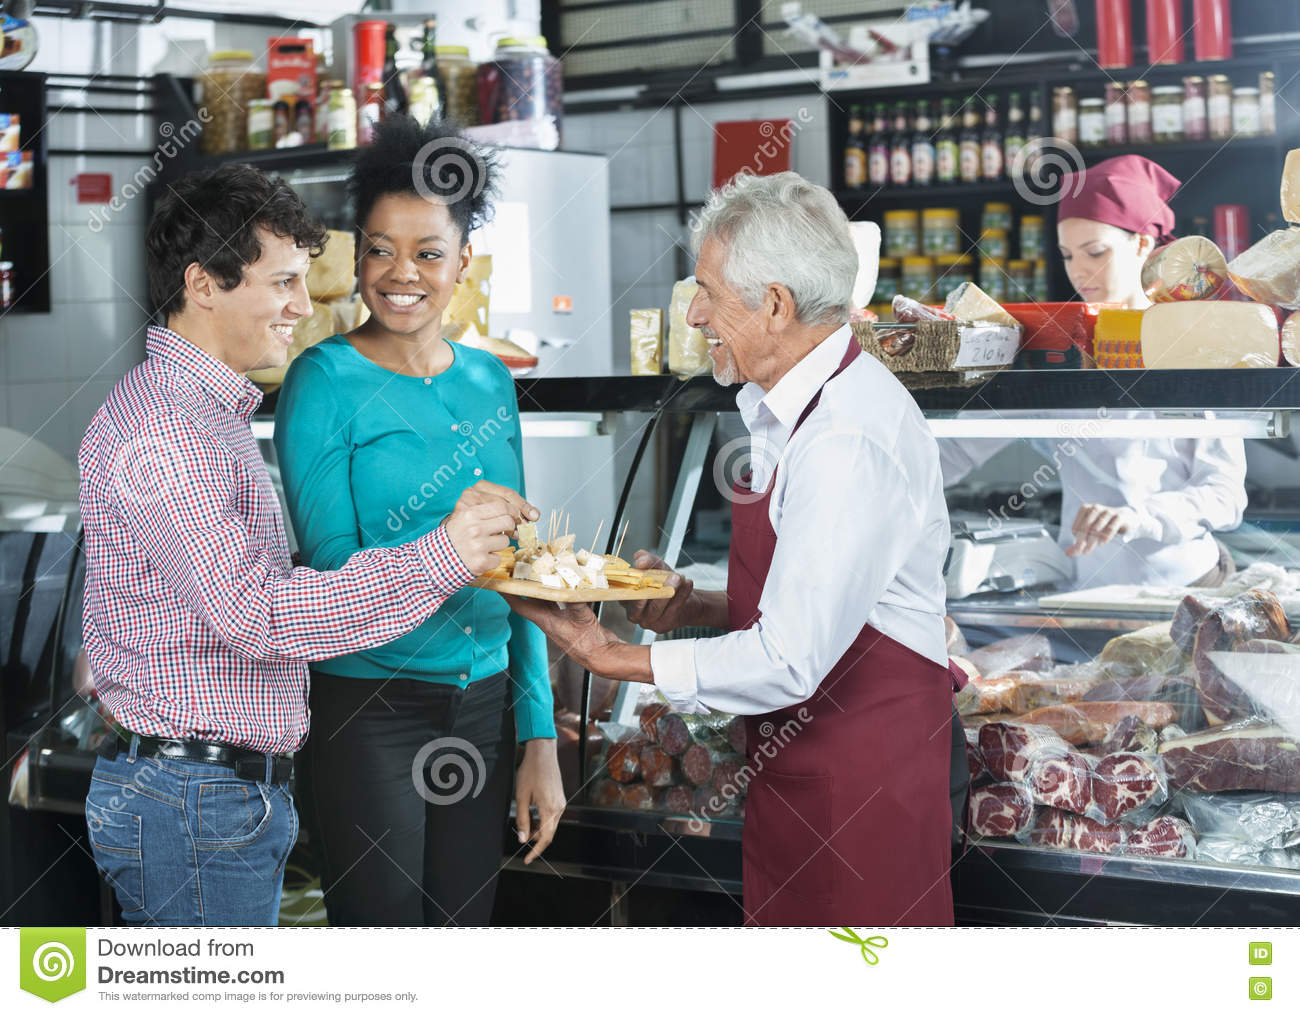 Salesman Offering Samples To Customers In Cheese Shop